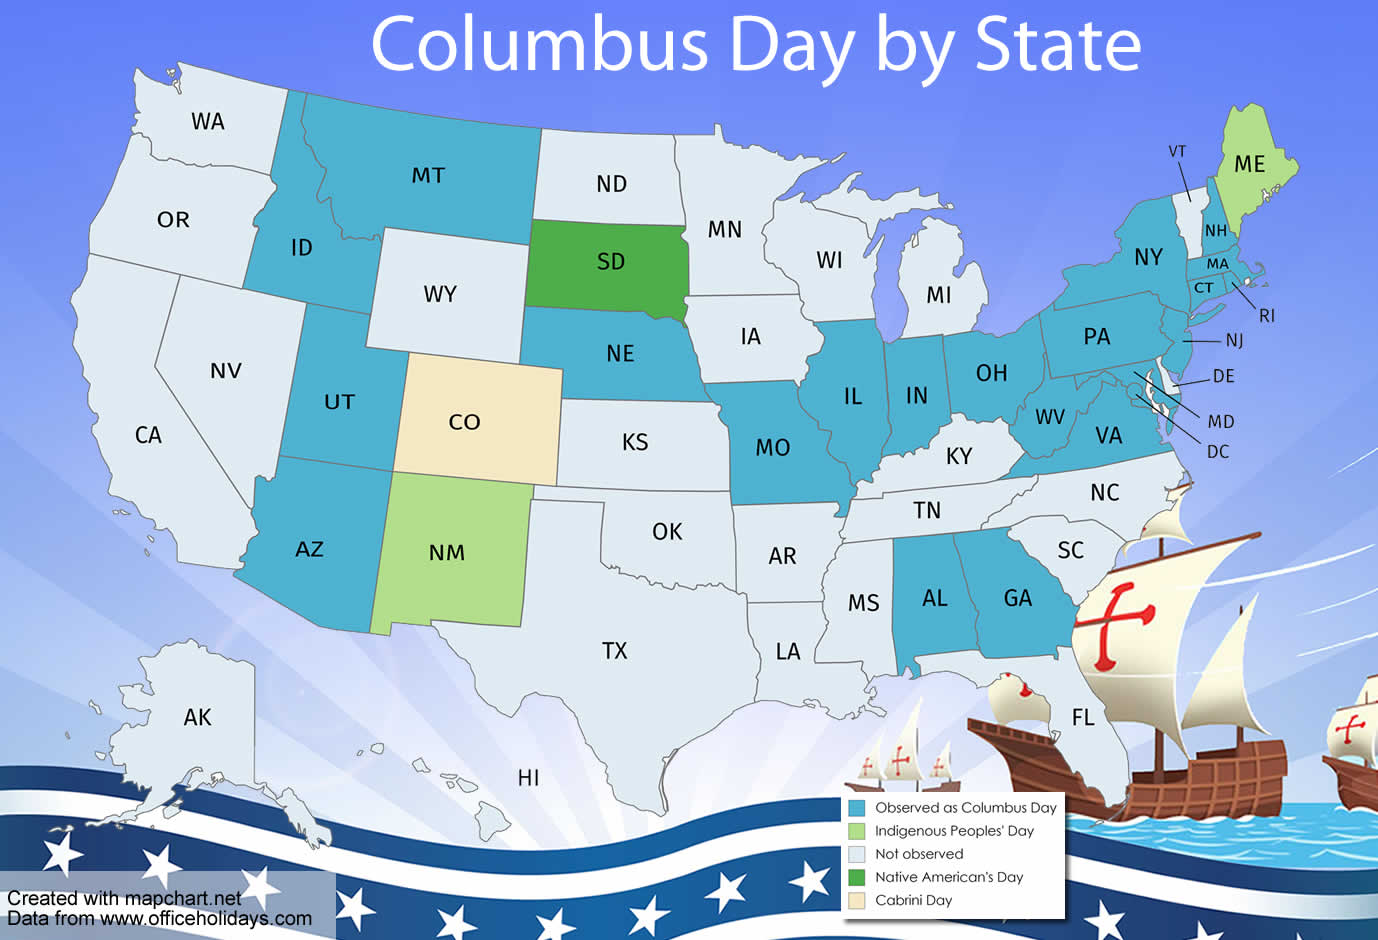 Map of Columbus Day by State